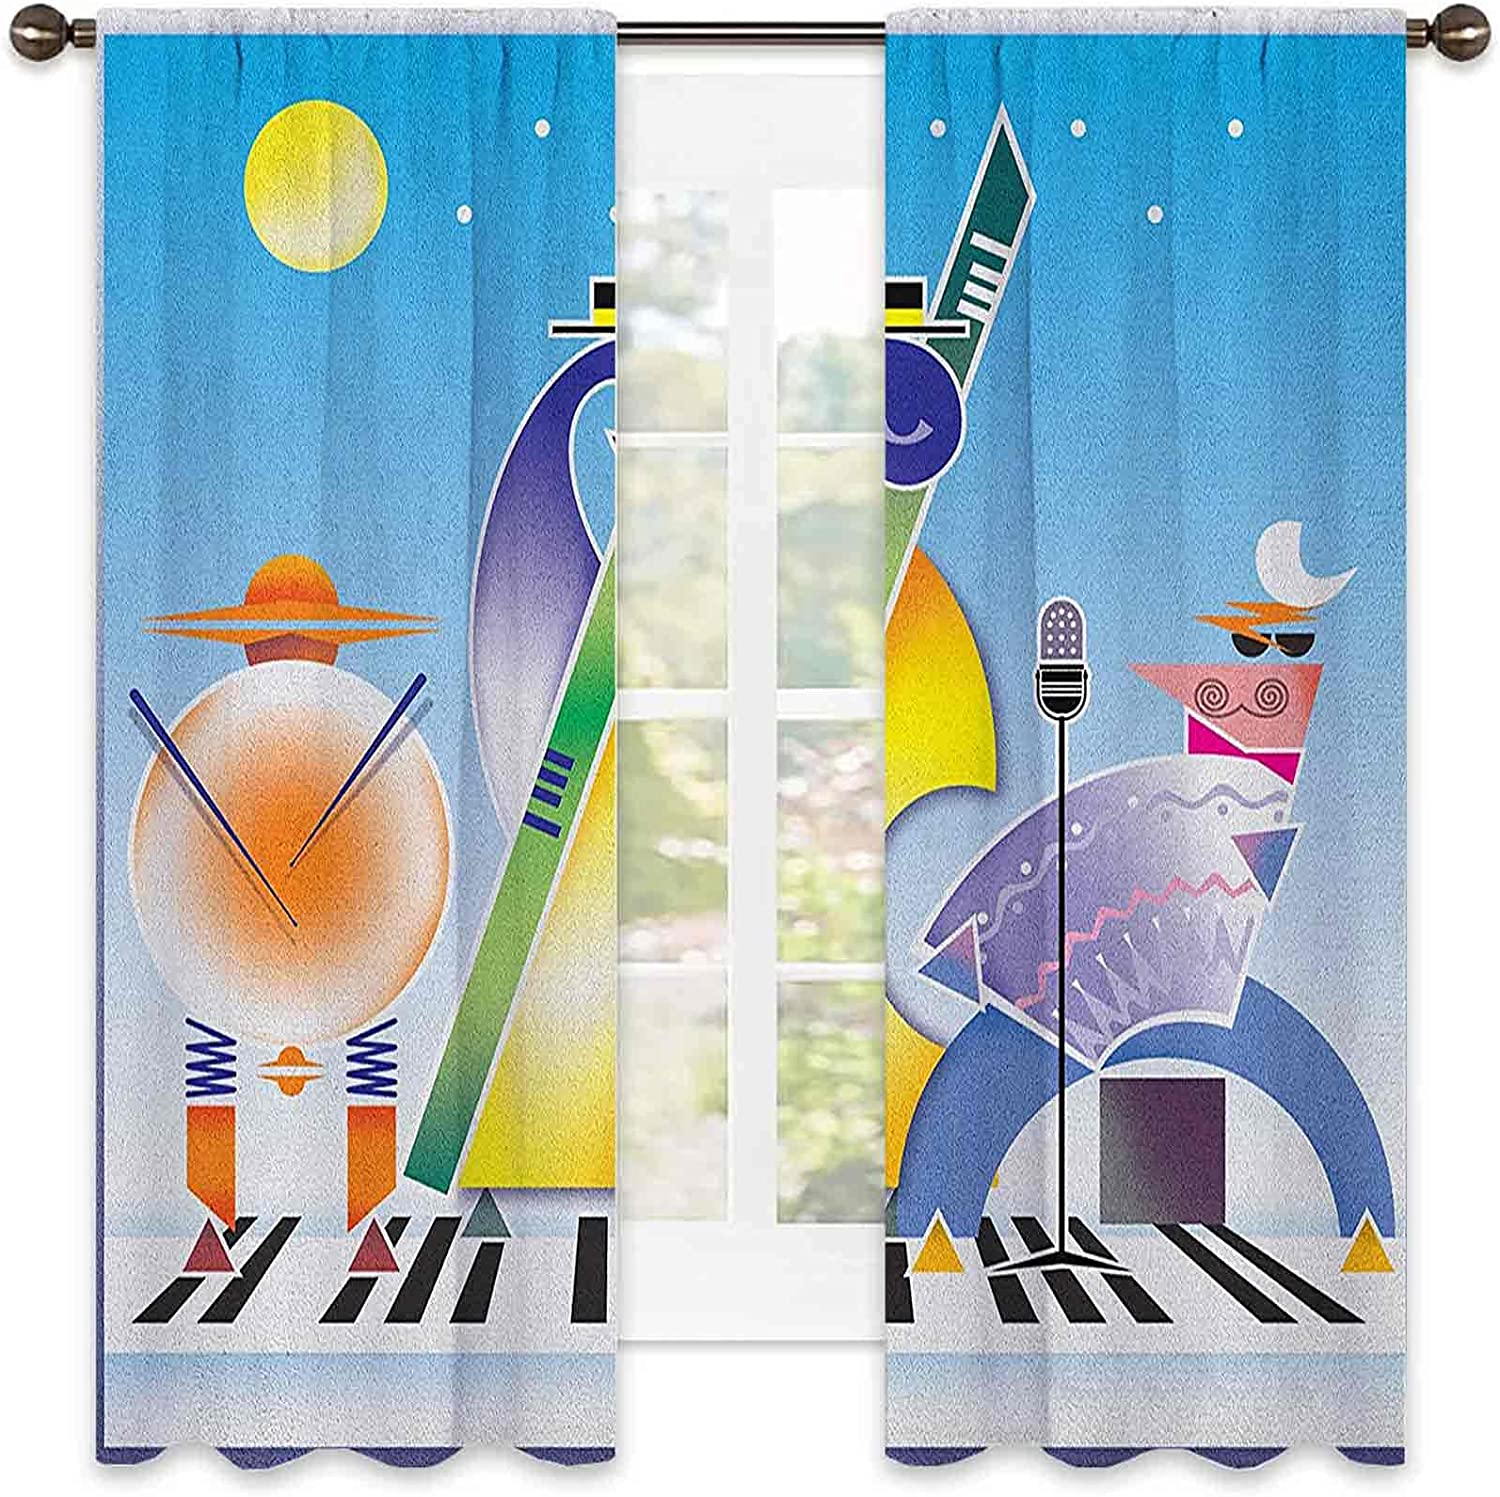 Music Heat Insulation Curtain Abstract of Quality inspection Geometric Max 70% OFF Band Shapes